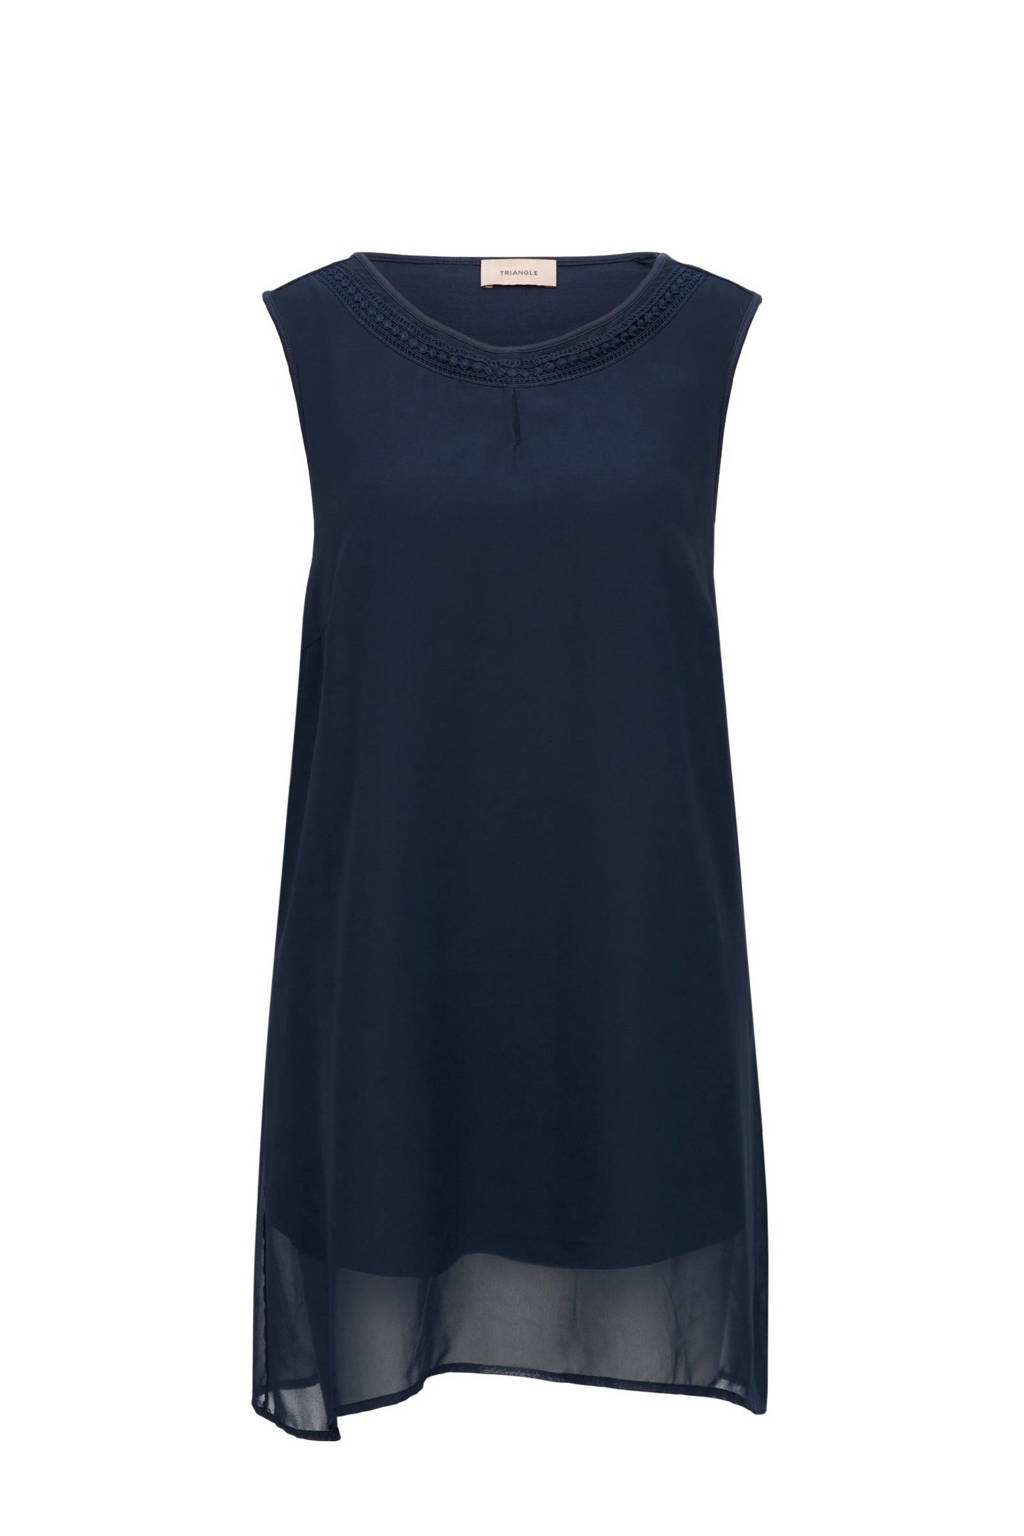 TRIANGLE semi-transparante top donkerblauw, Donkerblauw